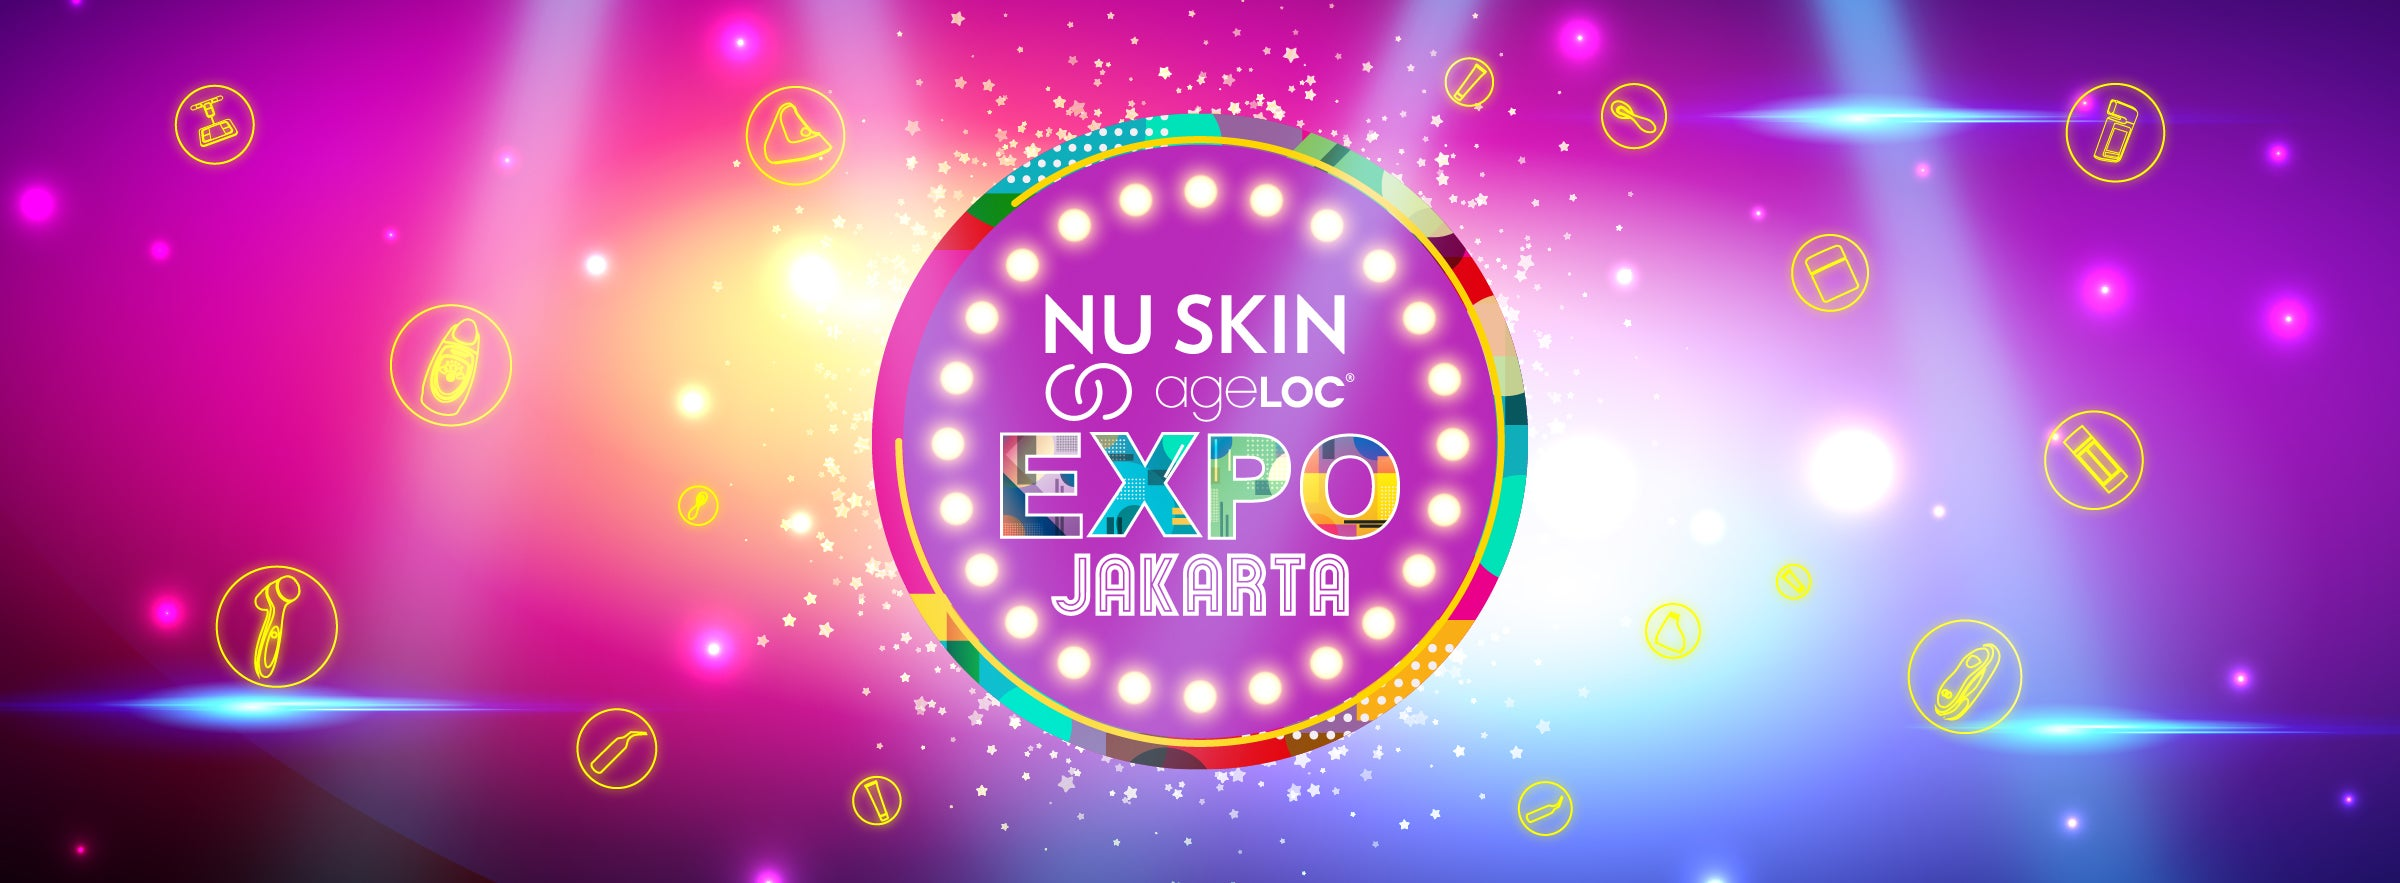 EXPO Nu Skin Indonesia